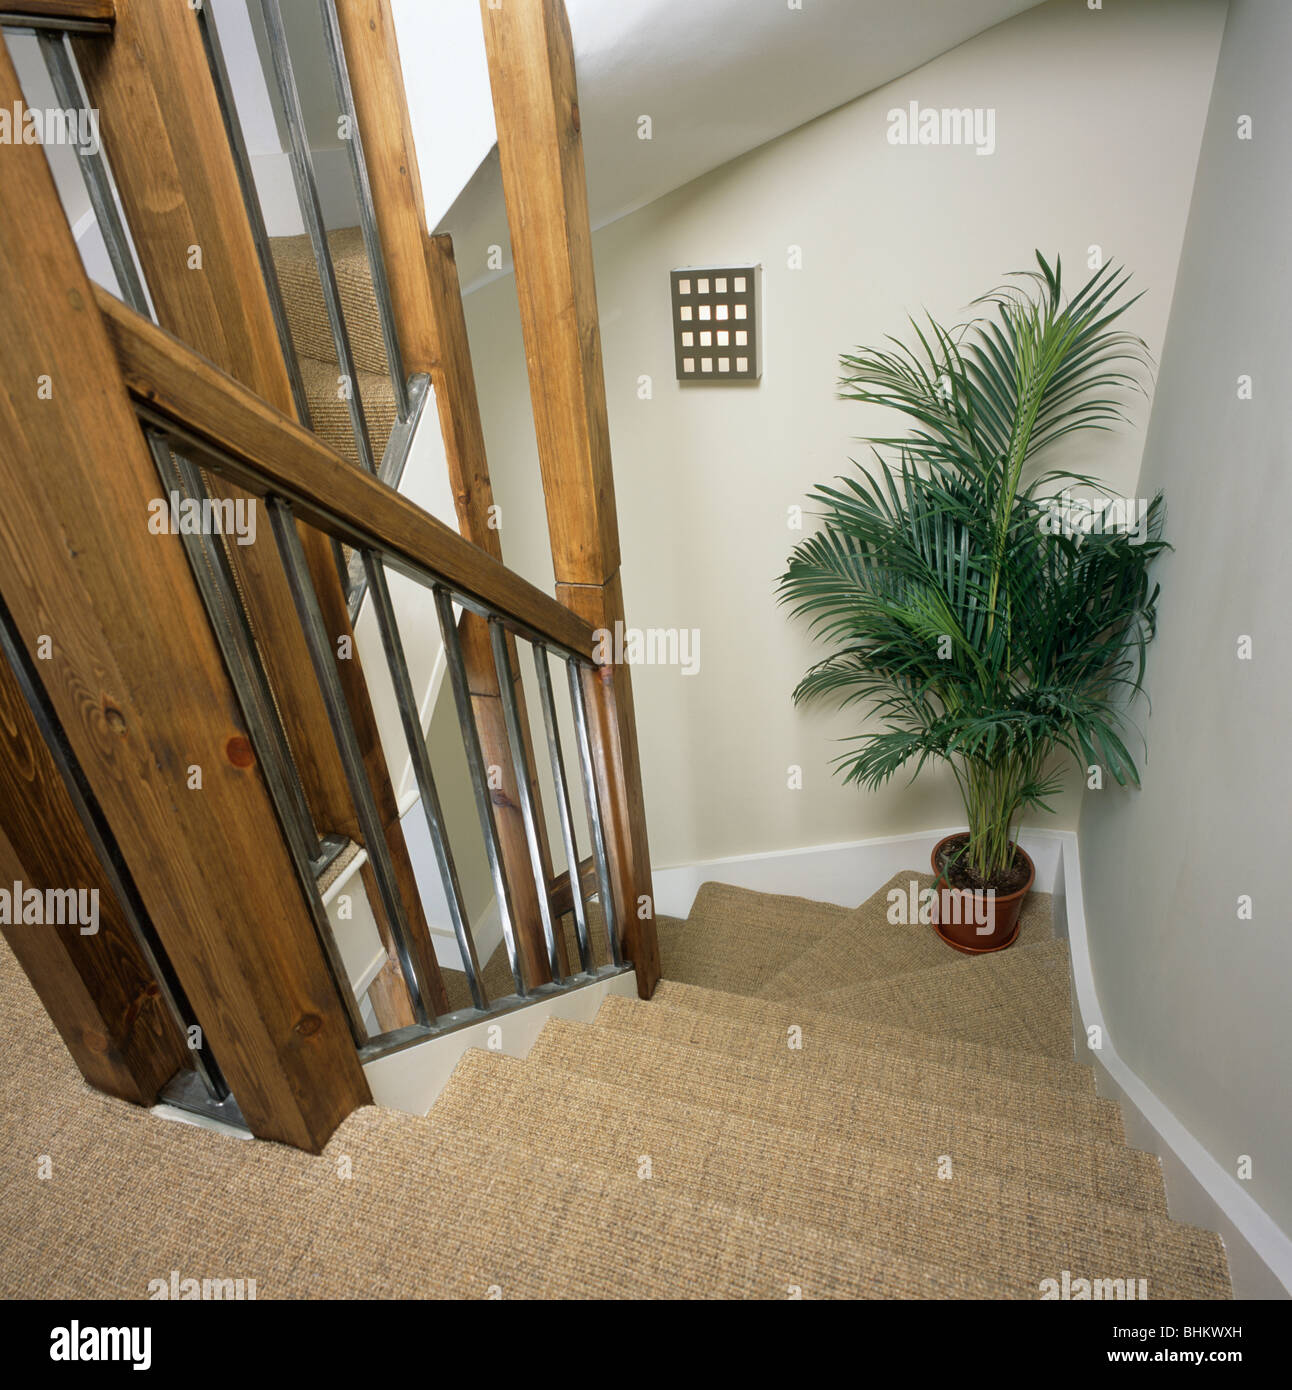 looking down staircase with sisal carpet to tall houseplant on corner of stairs stock image